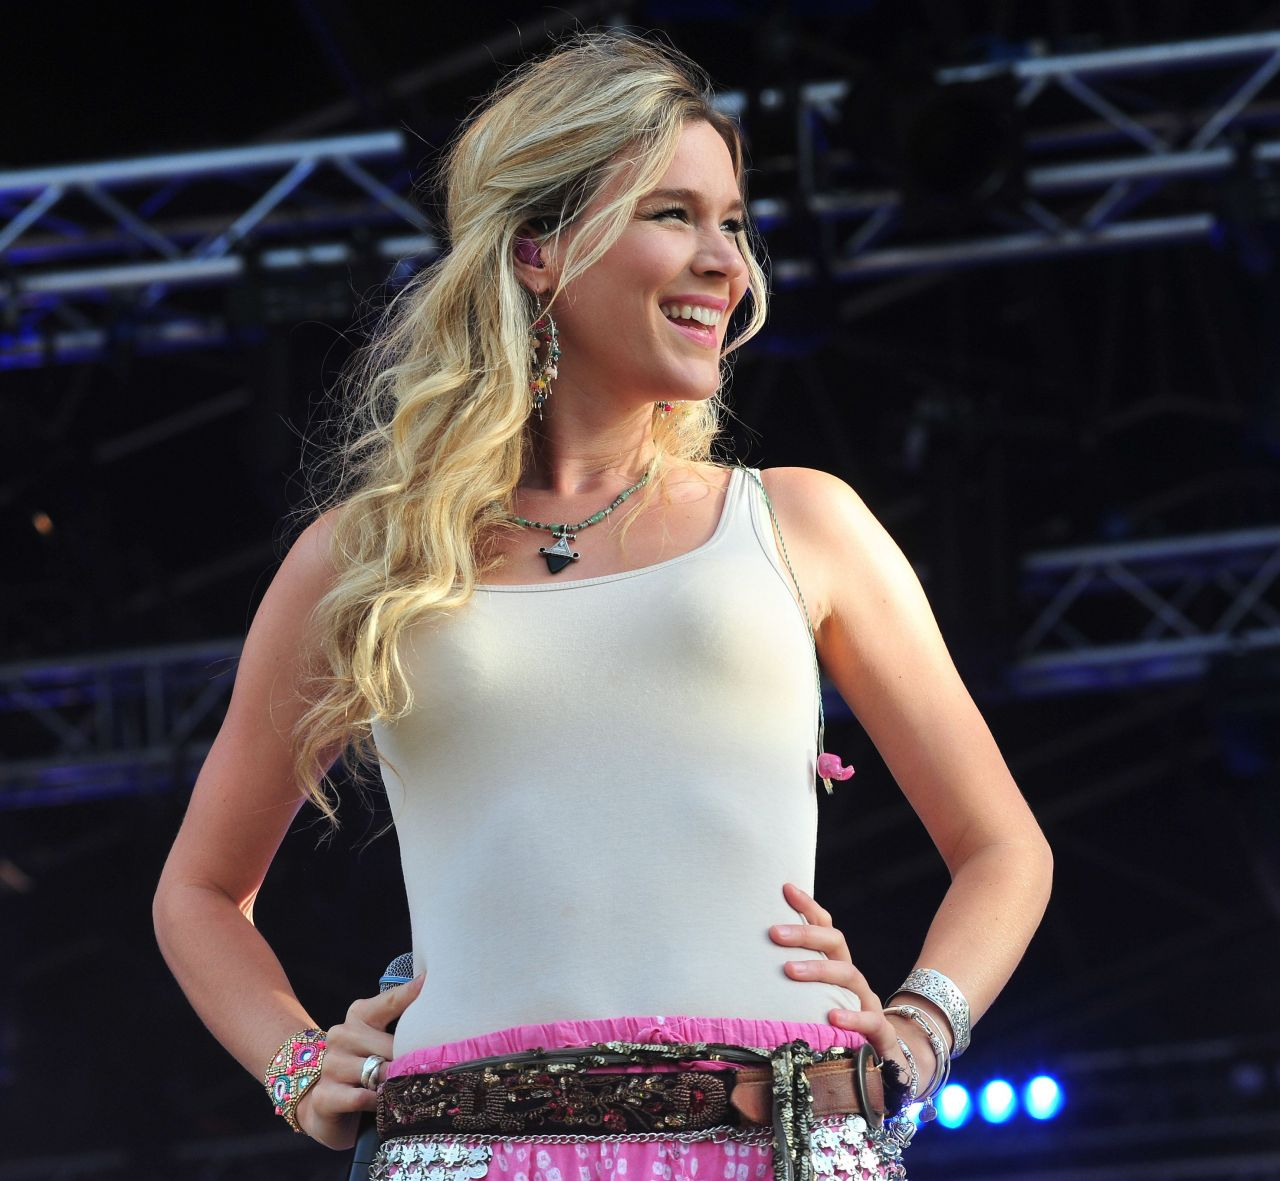 Joss Stone Performing At Carfest North In Cheshire